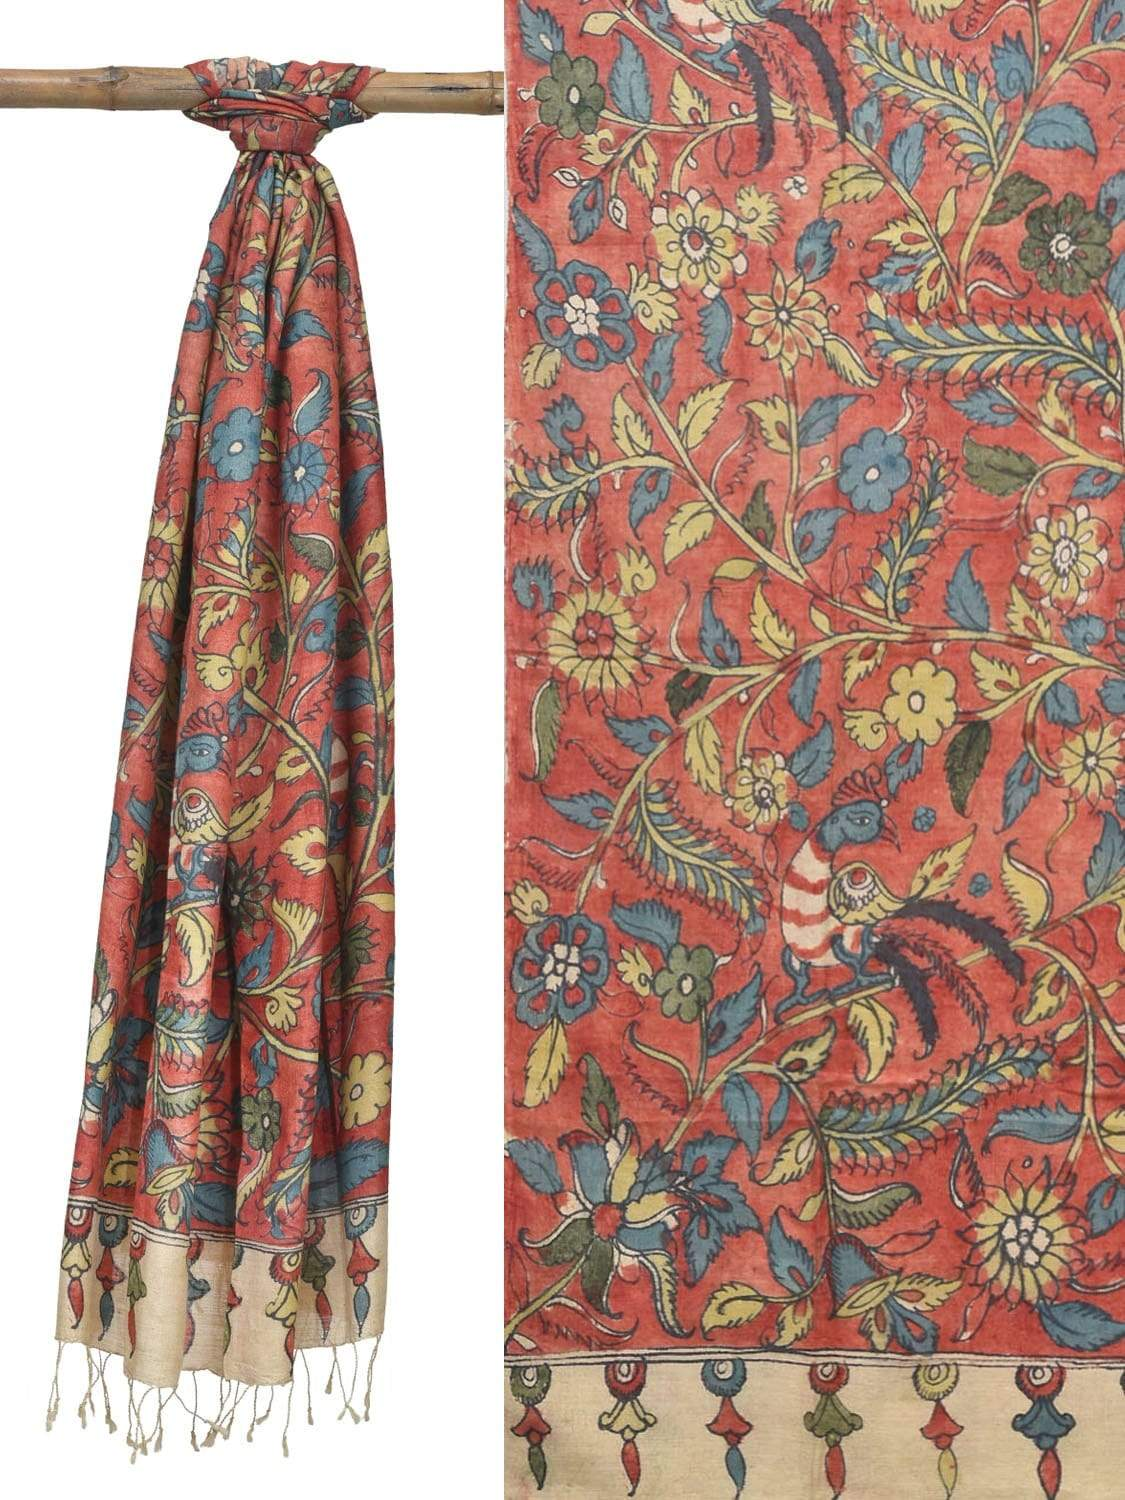 Red Kalamkari Hand Painted Muga Silk Handloom Dupatta with Peacock and Flowers Design ds1822